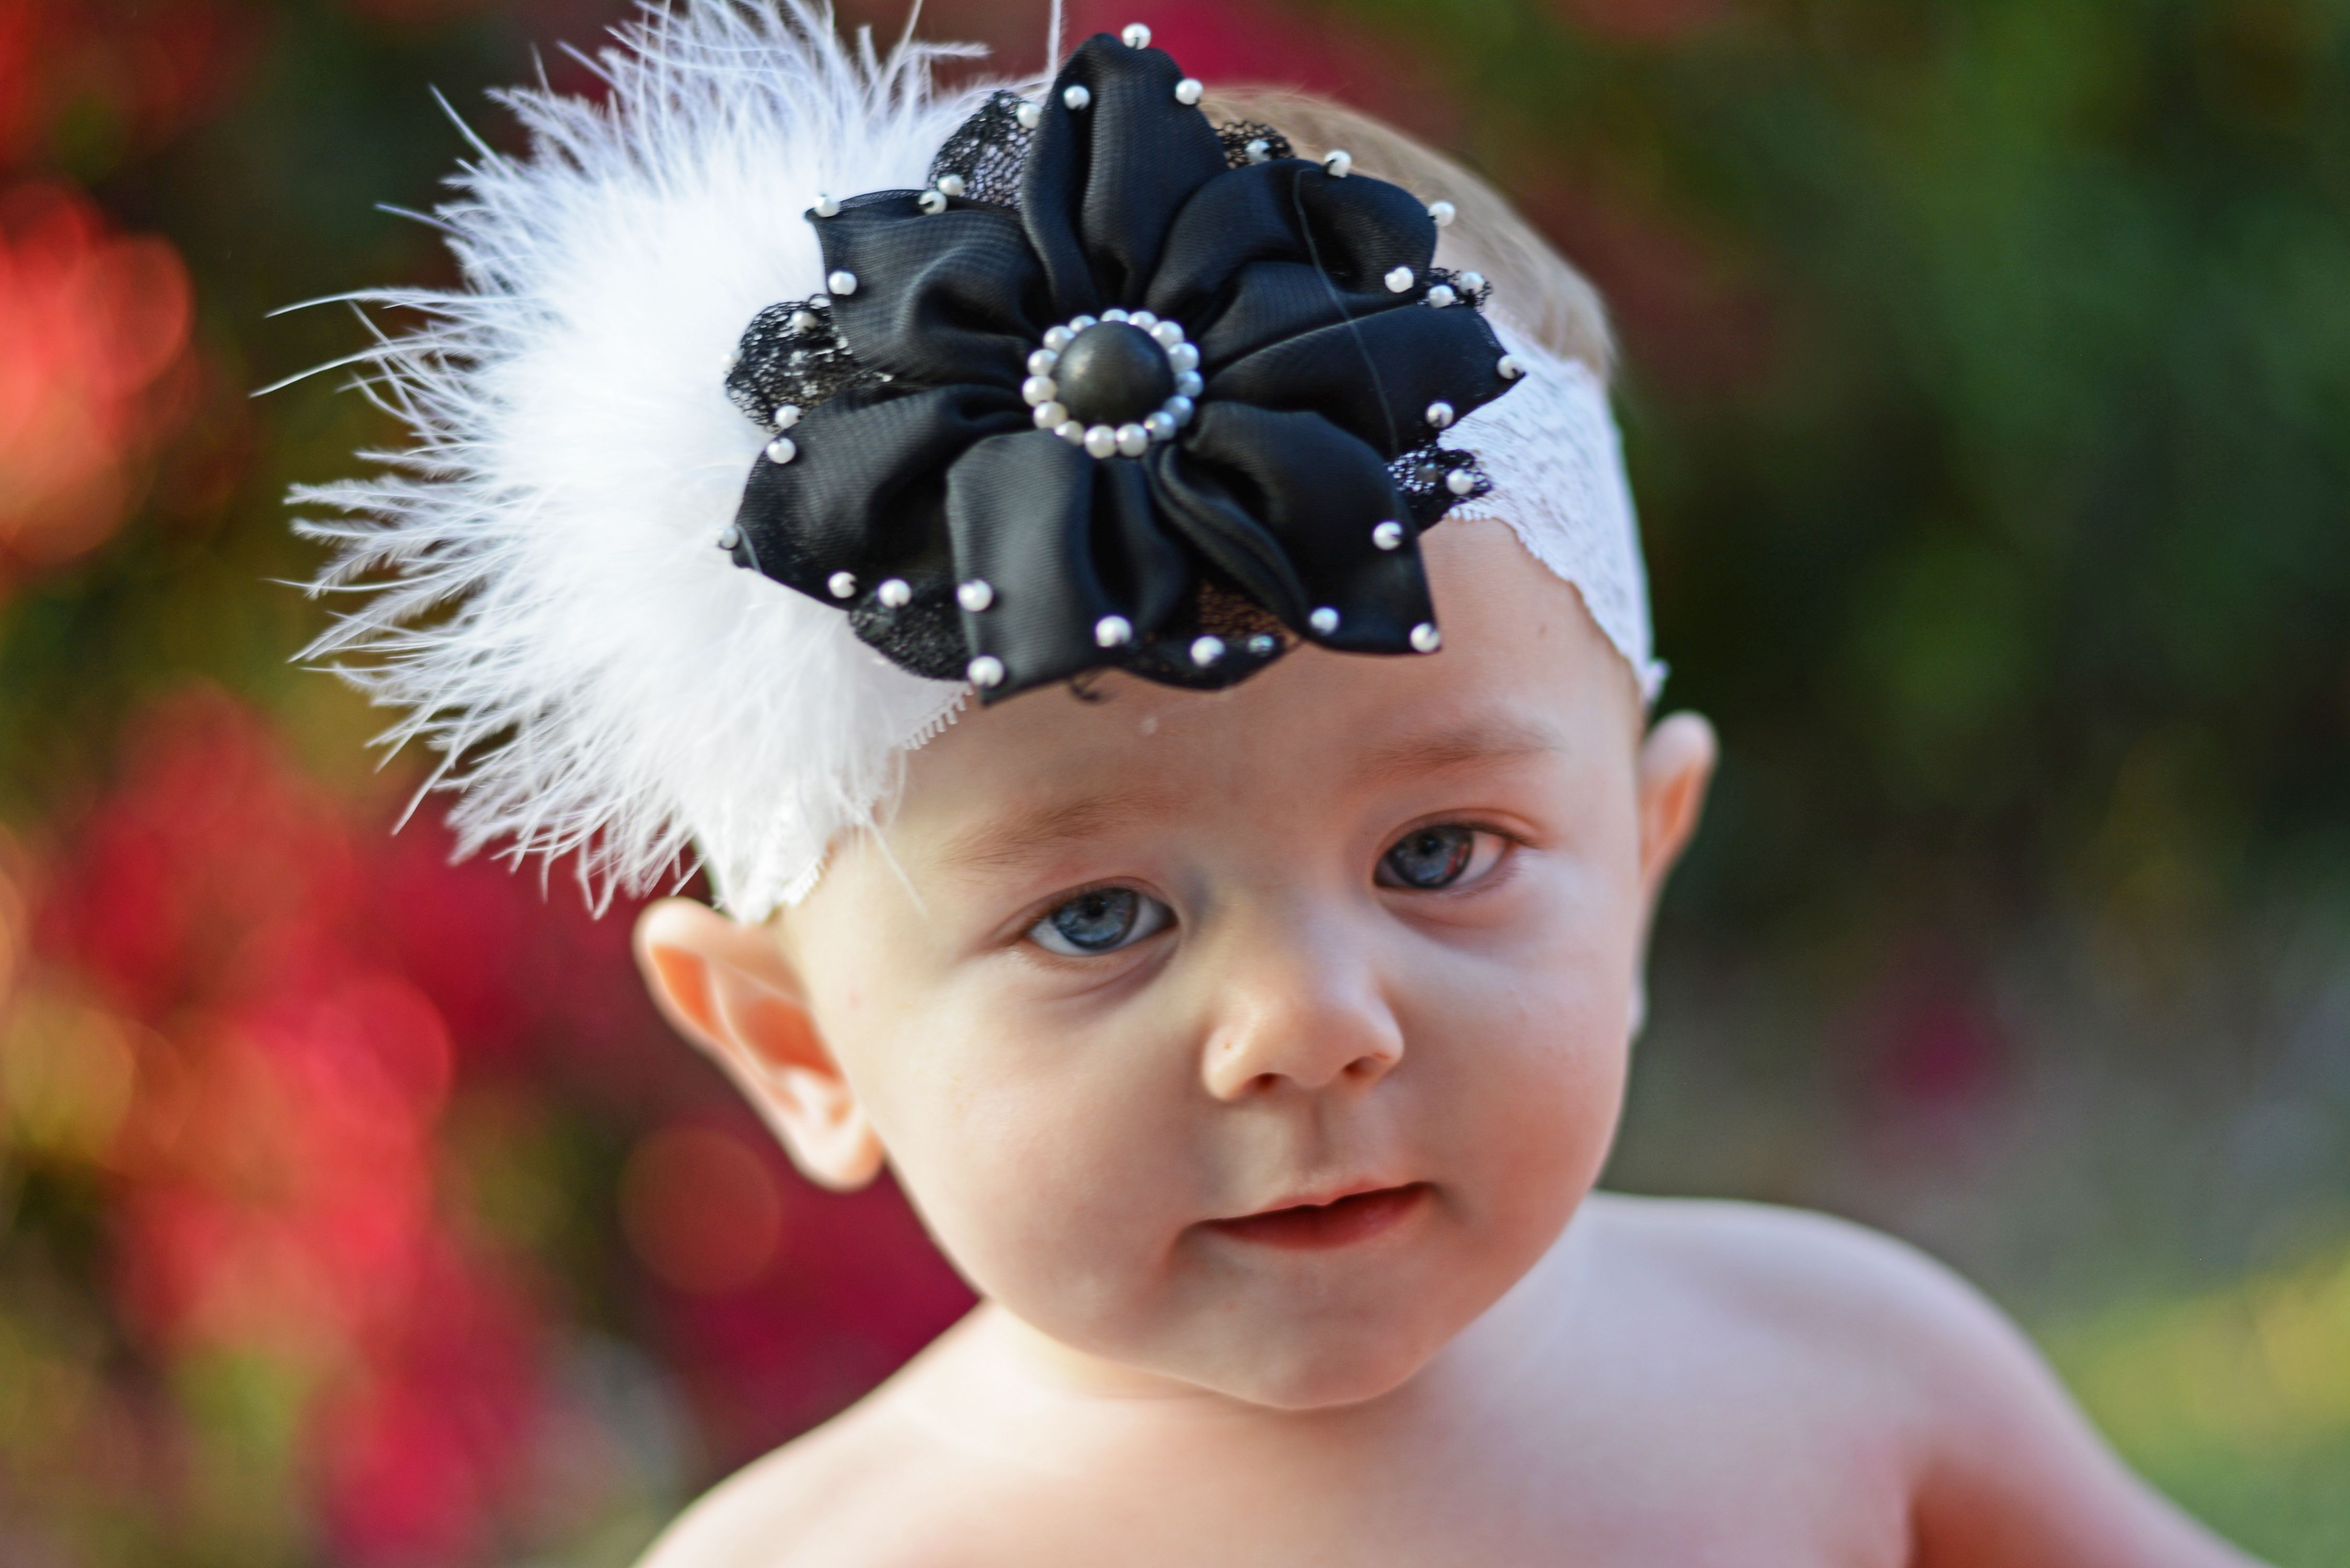 This beautiful black flower with pearls and maribou is perfect for this winter or any time of year!